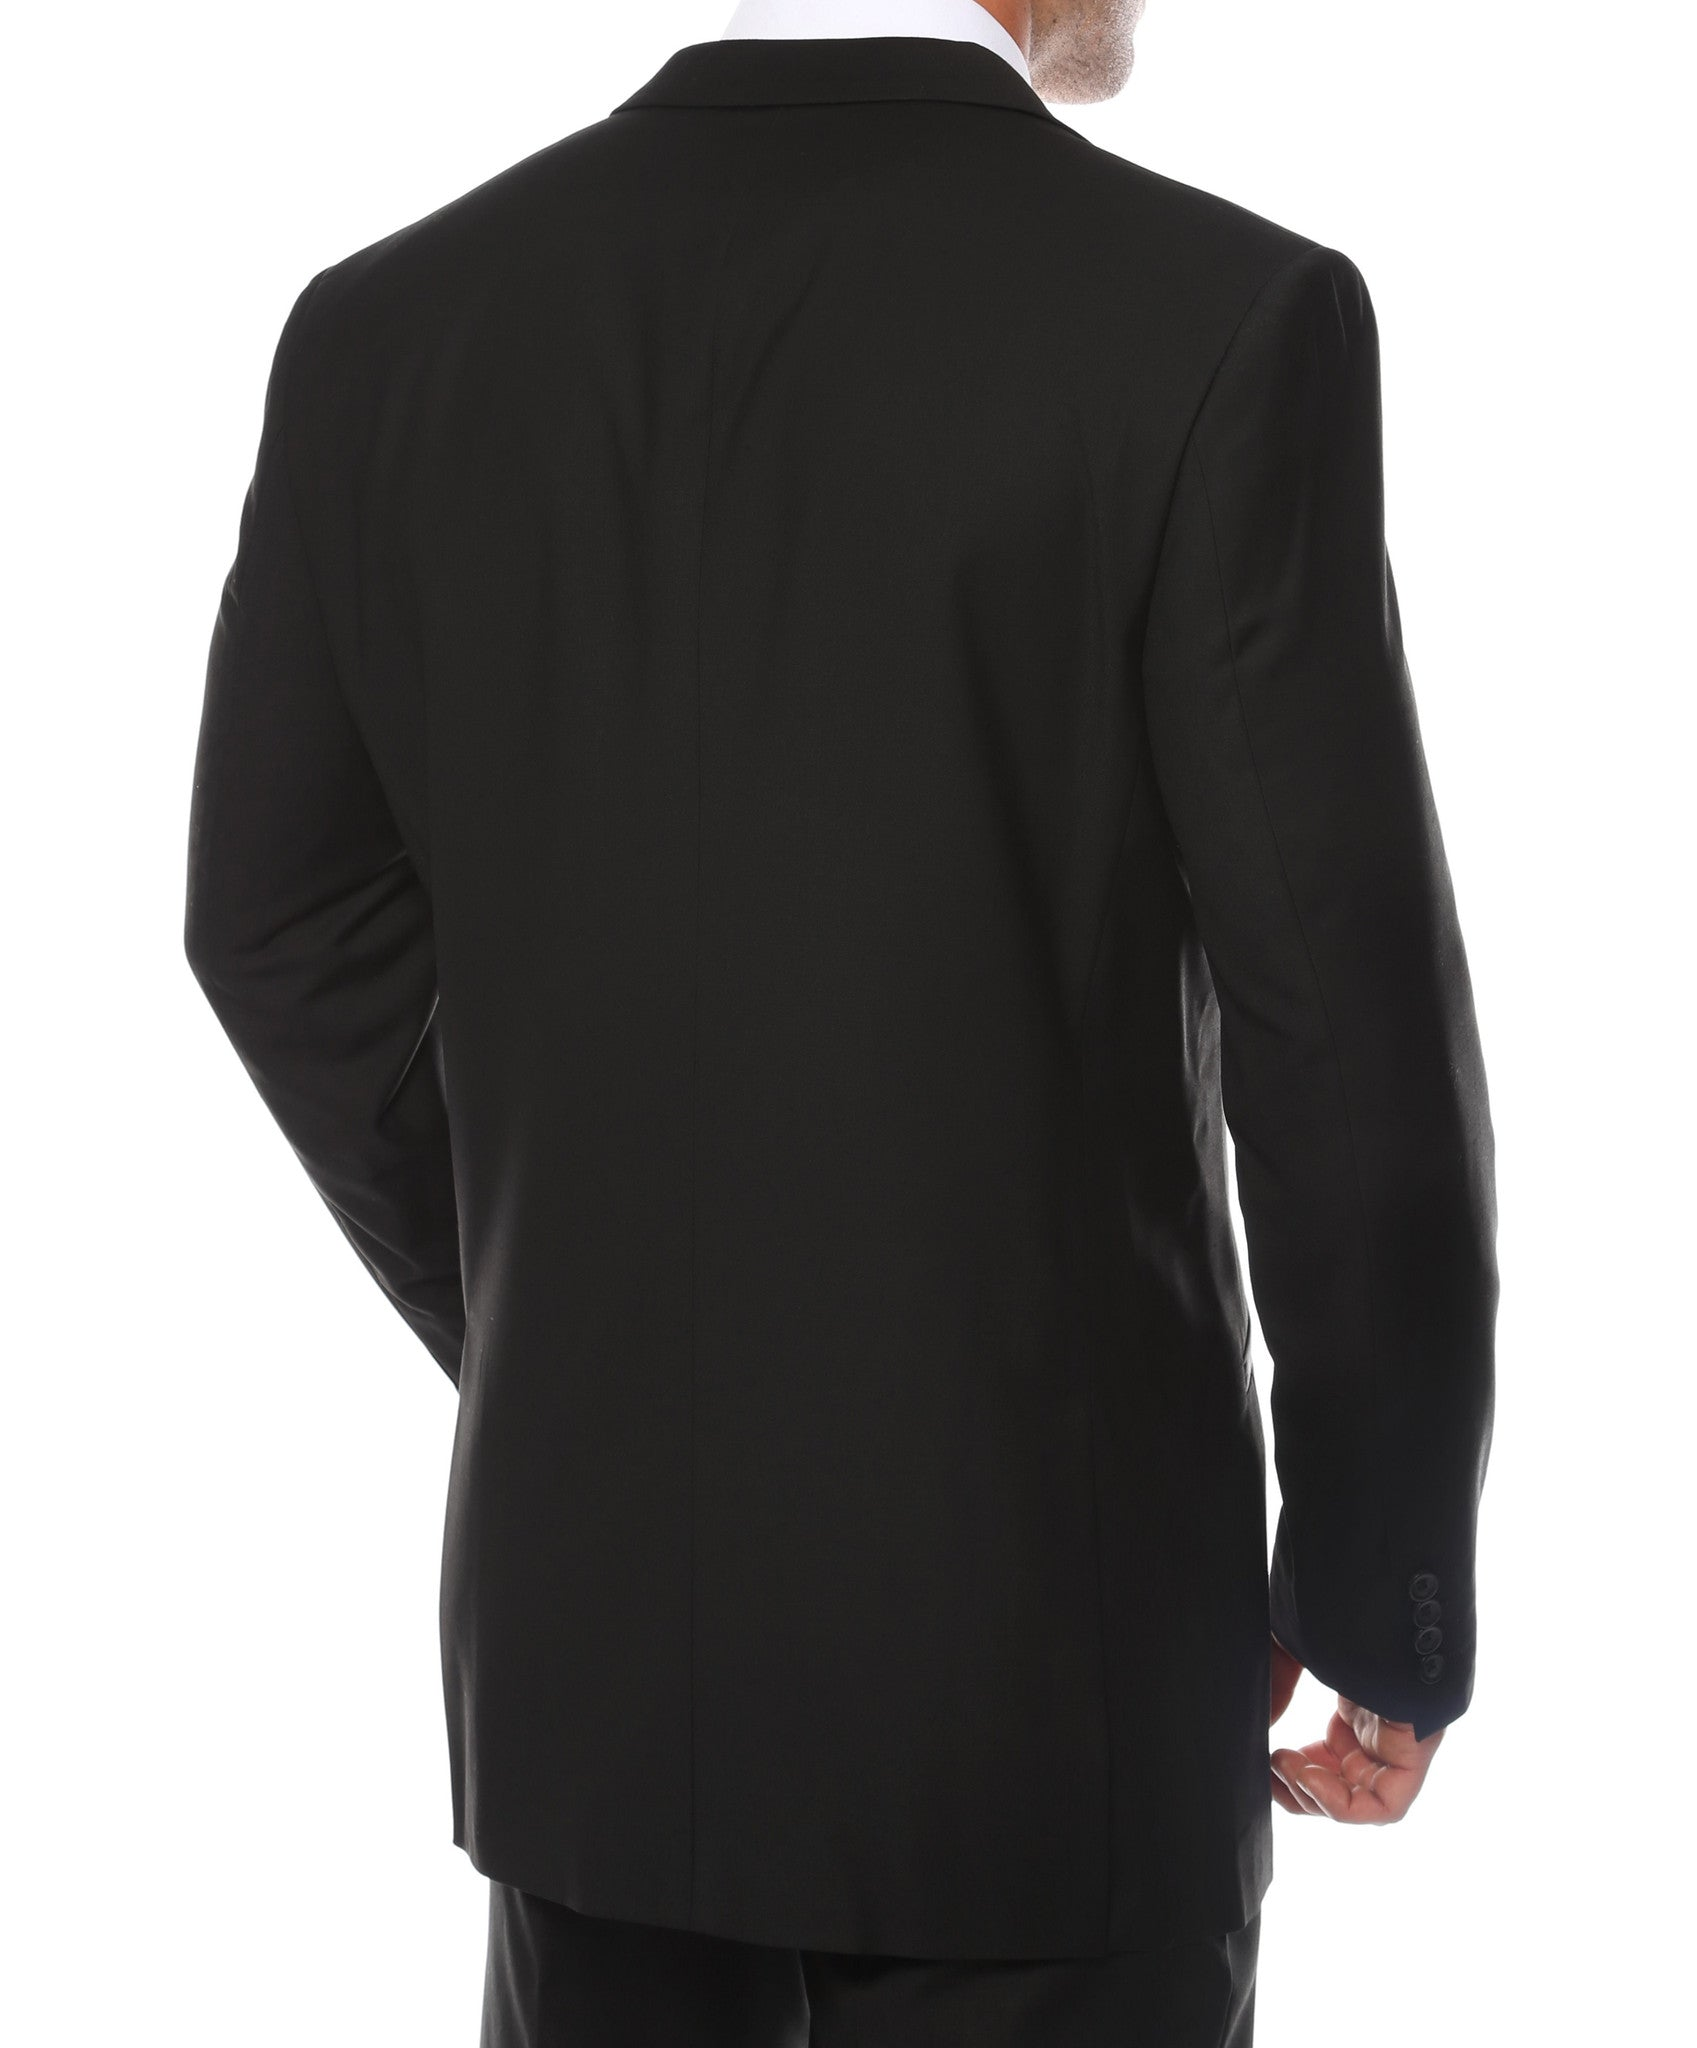 The JerseyBoy Black Grey Slim Fit Mens Blazer